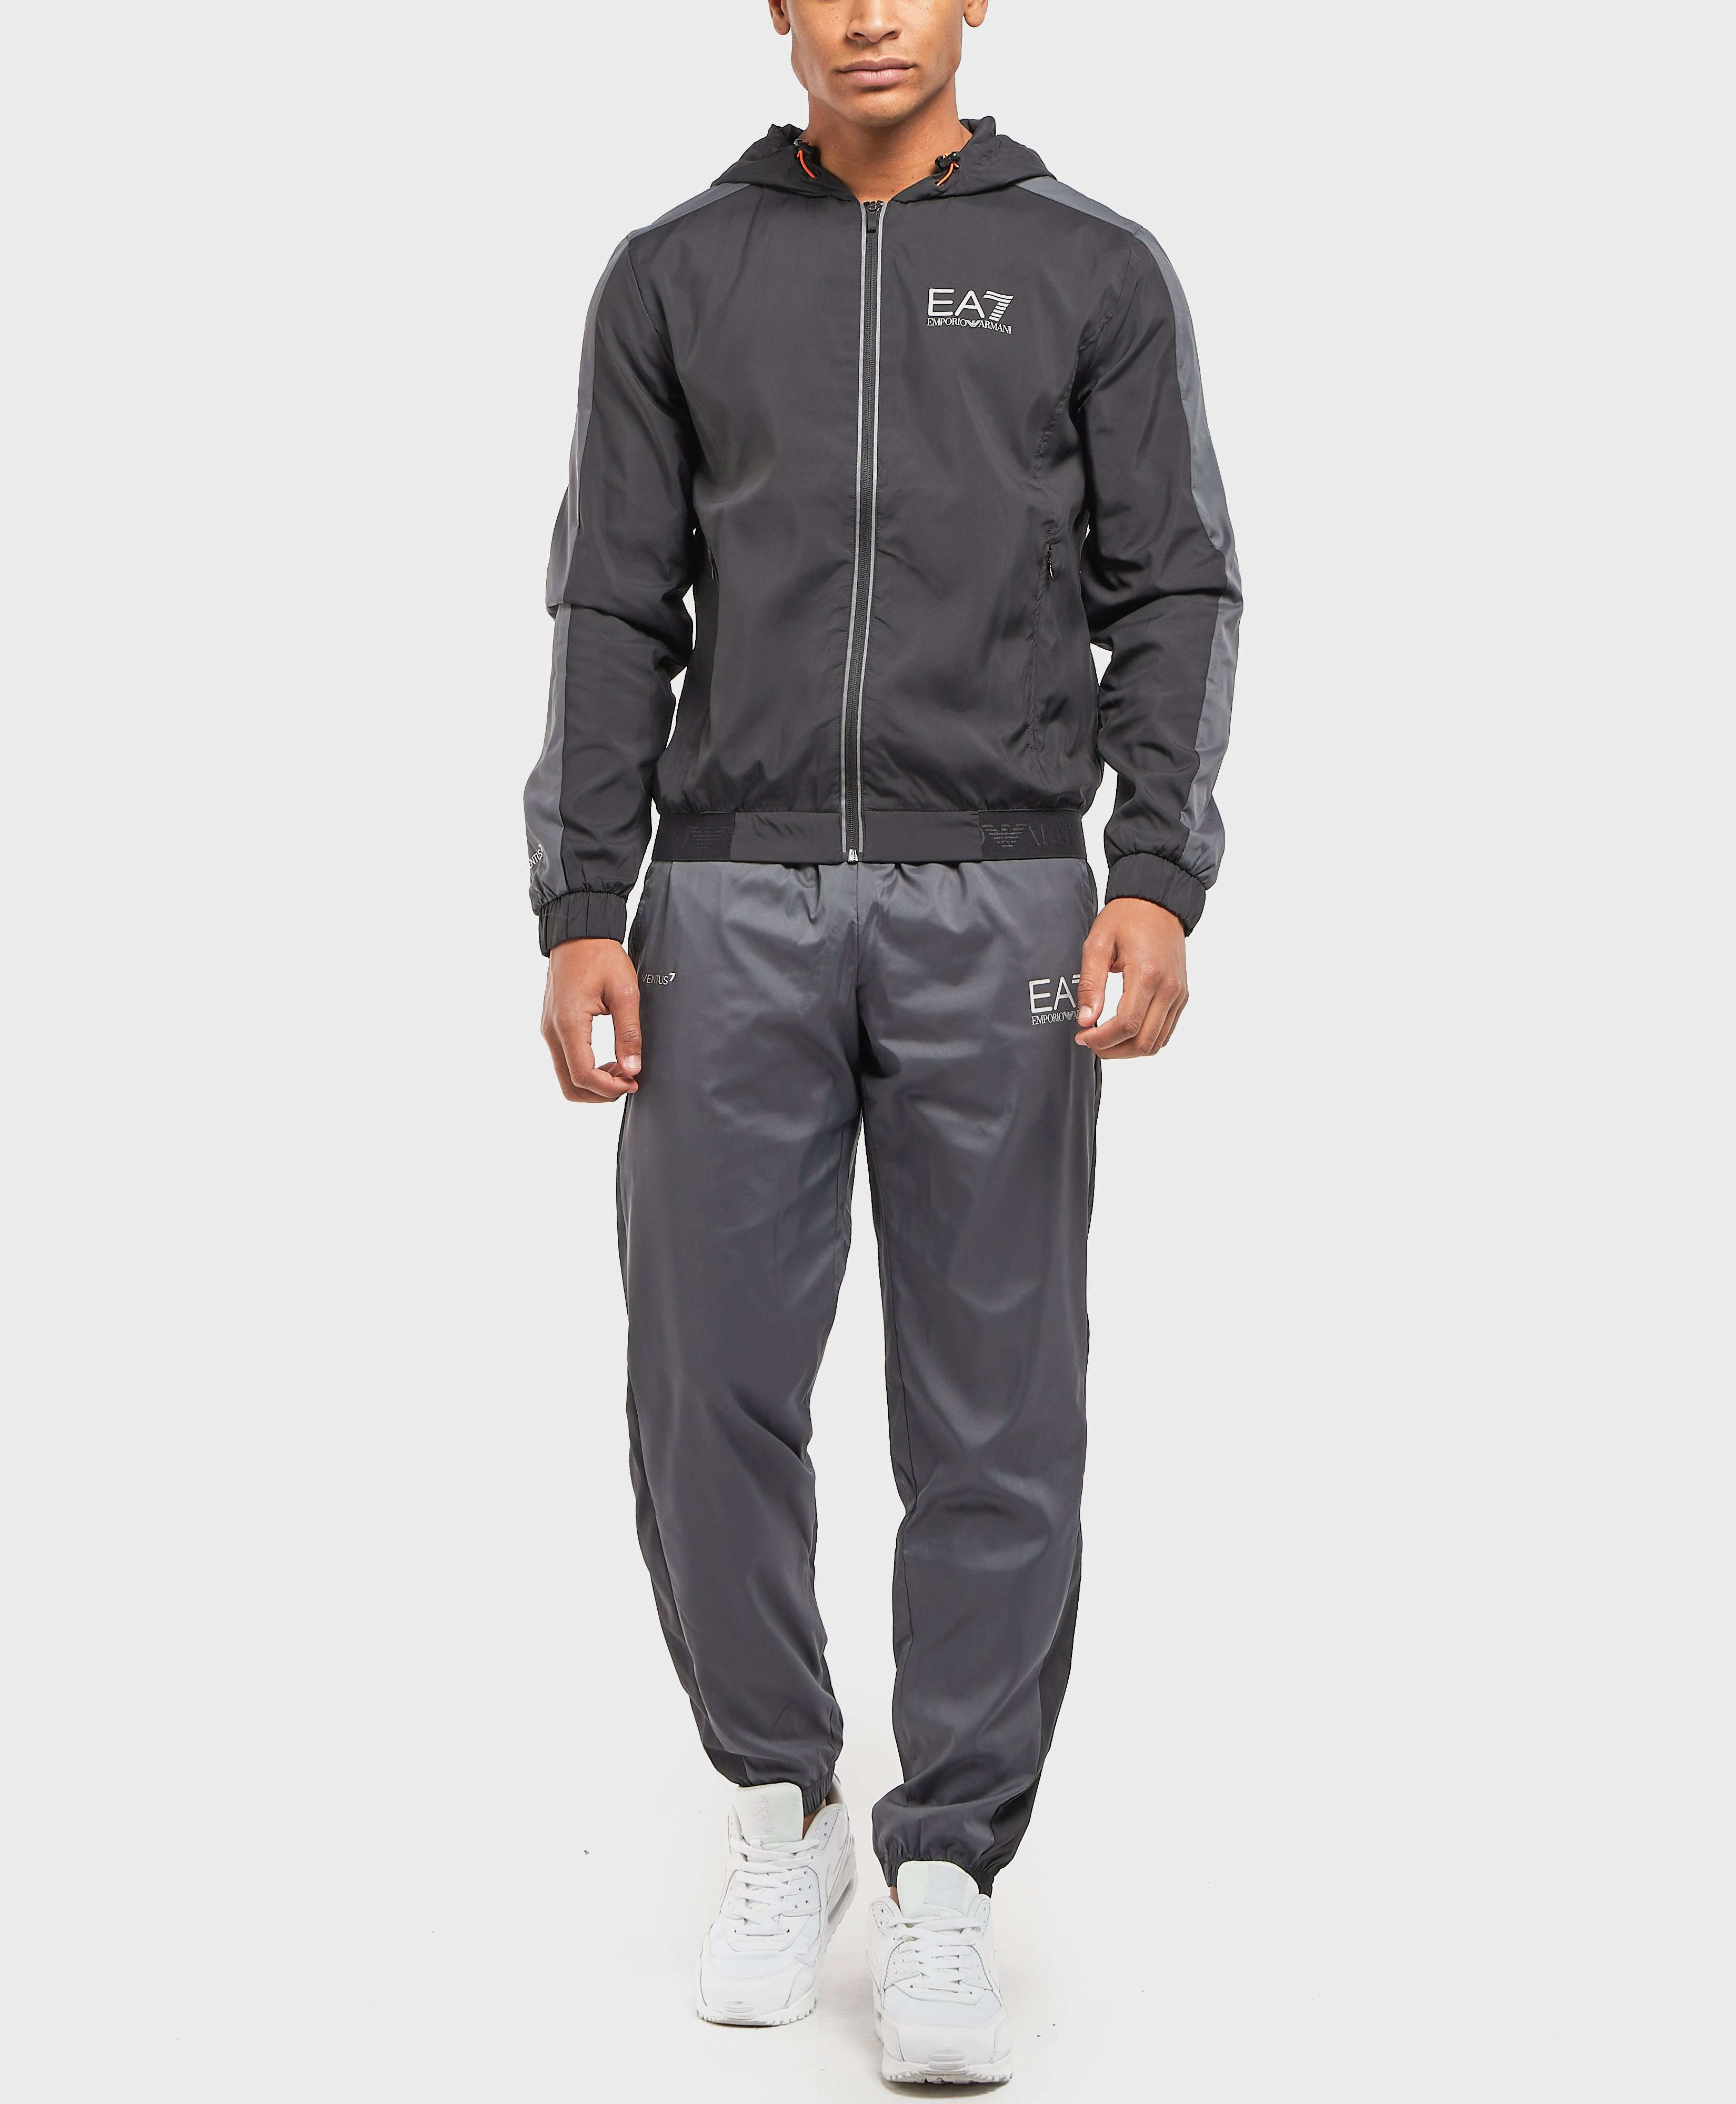 Emporio Armani EA7 Panelled Full Tracksuit - Online Exclusive